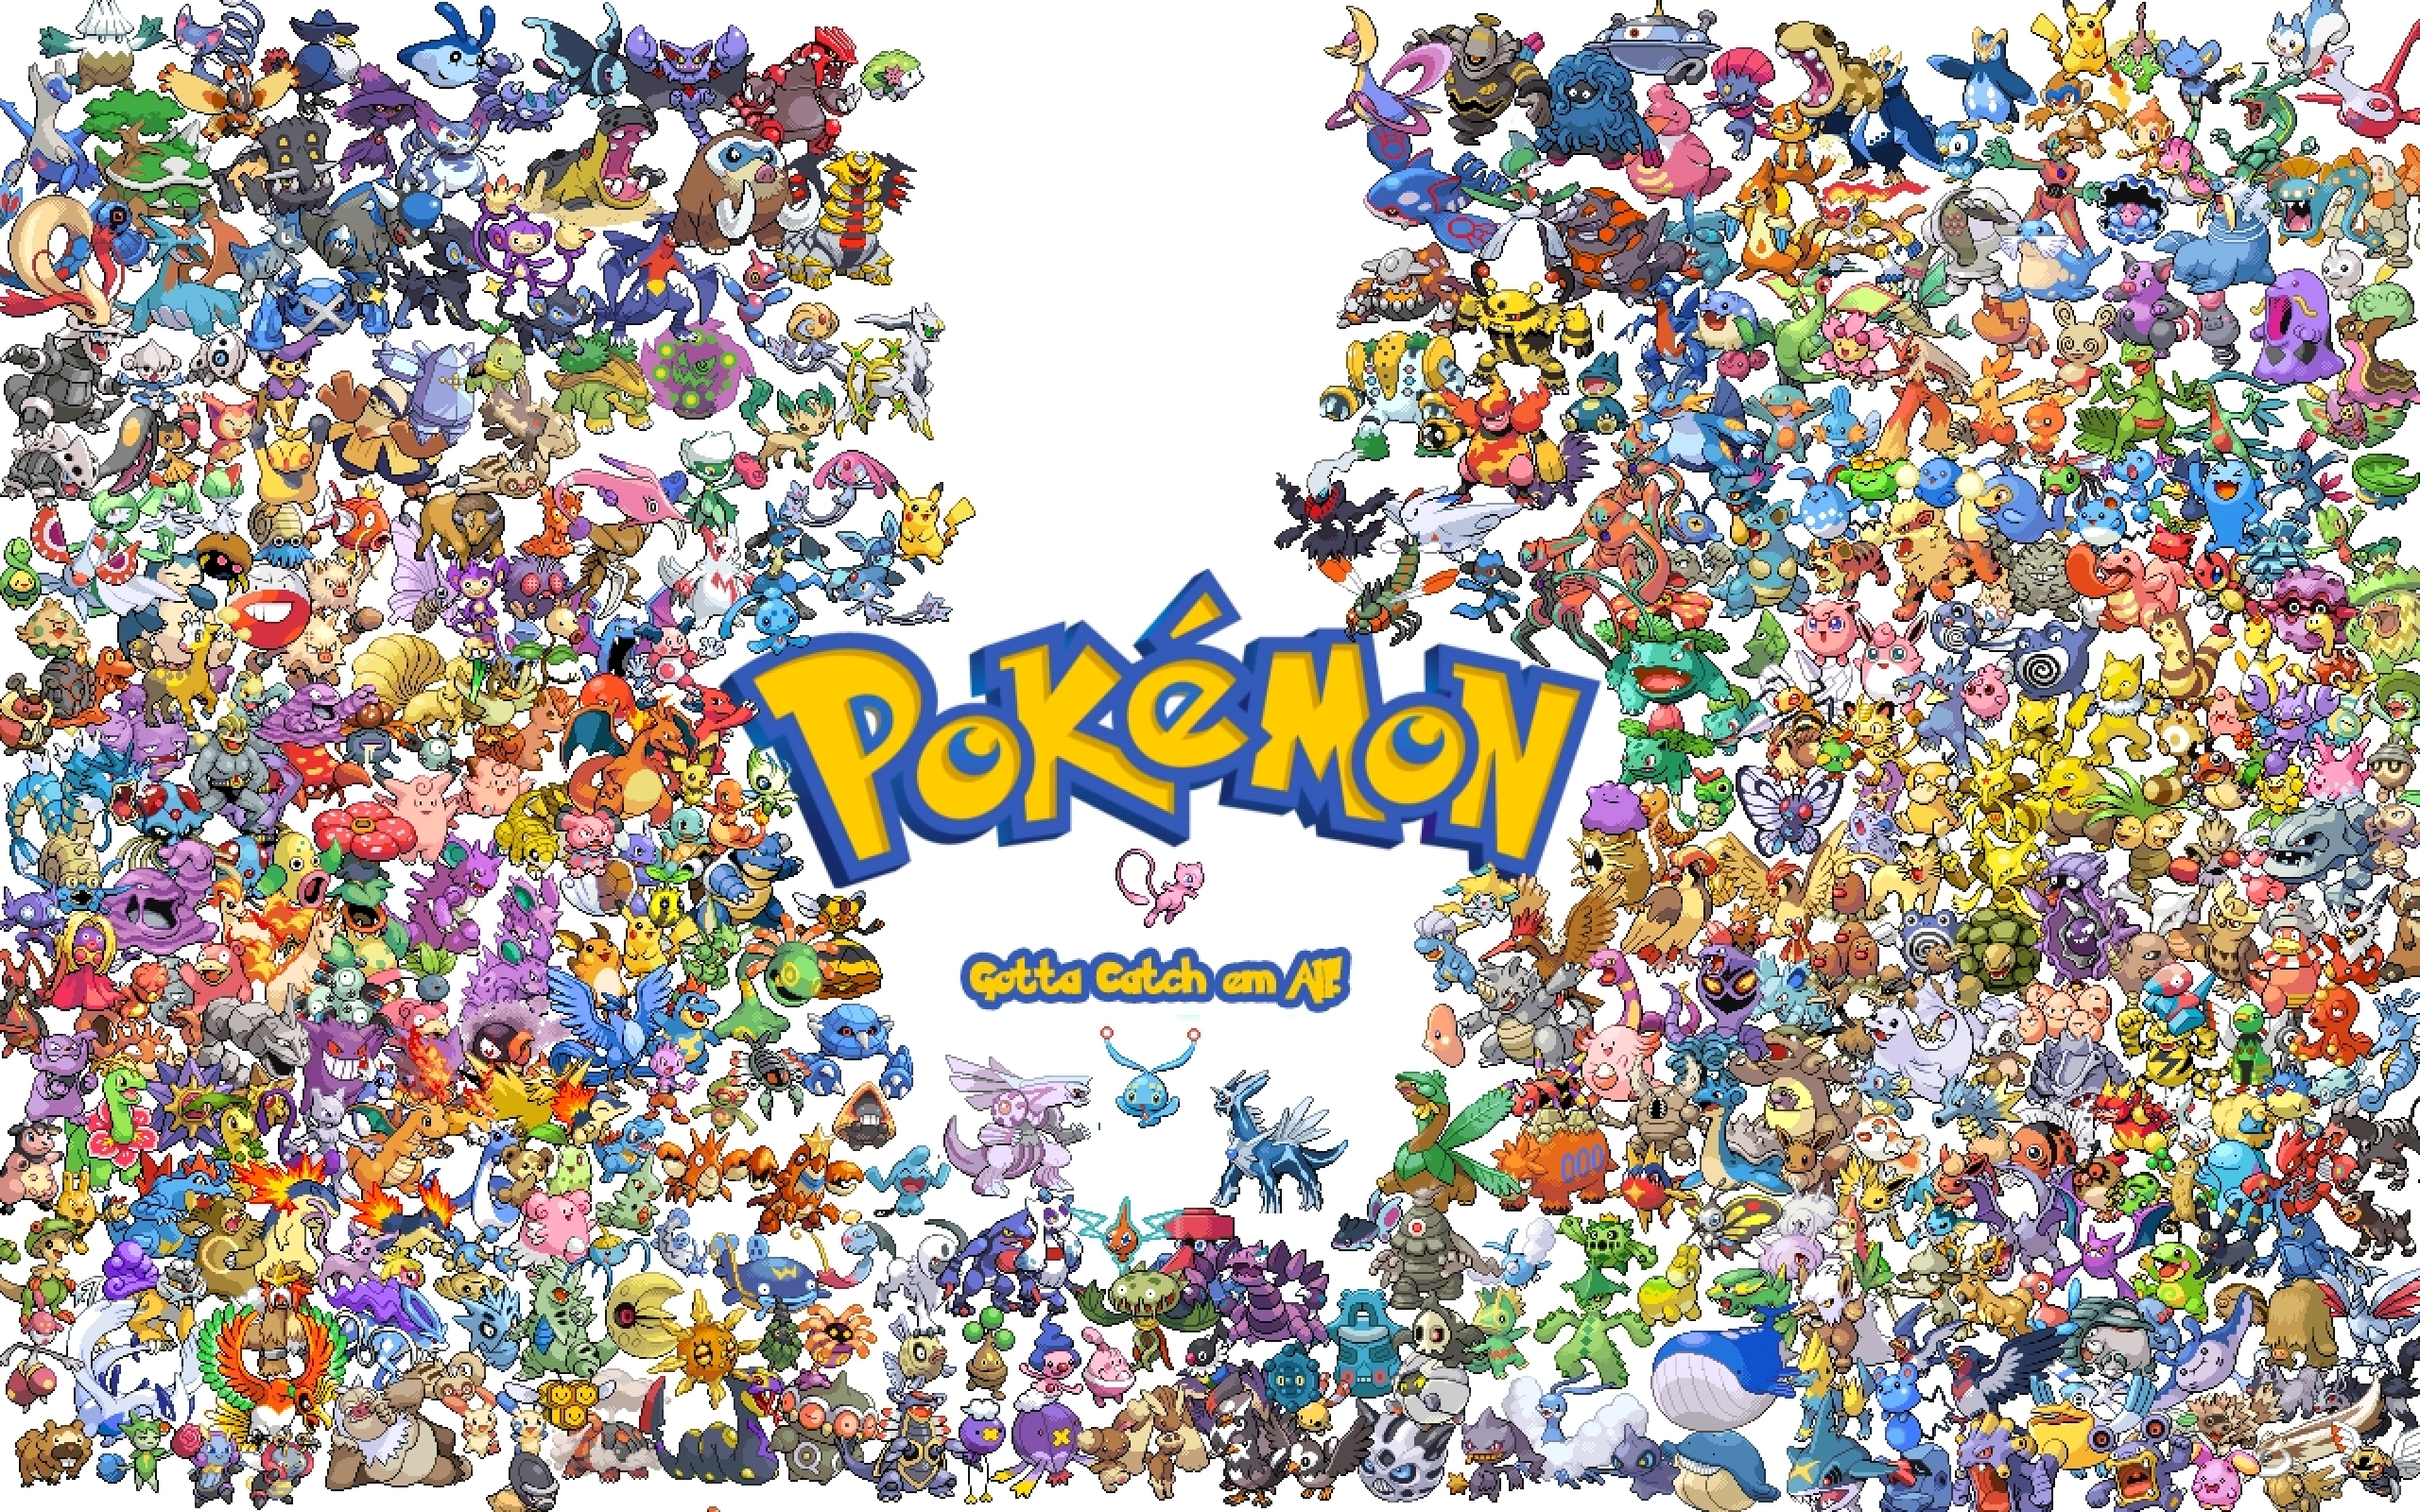 Pokemon Wallpaper 760 HD Wallpapers